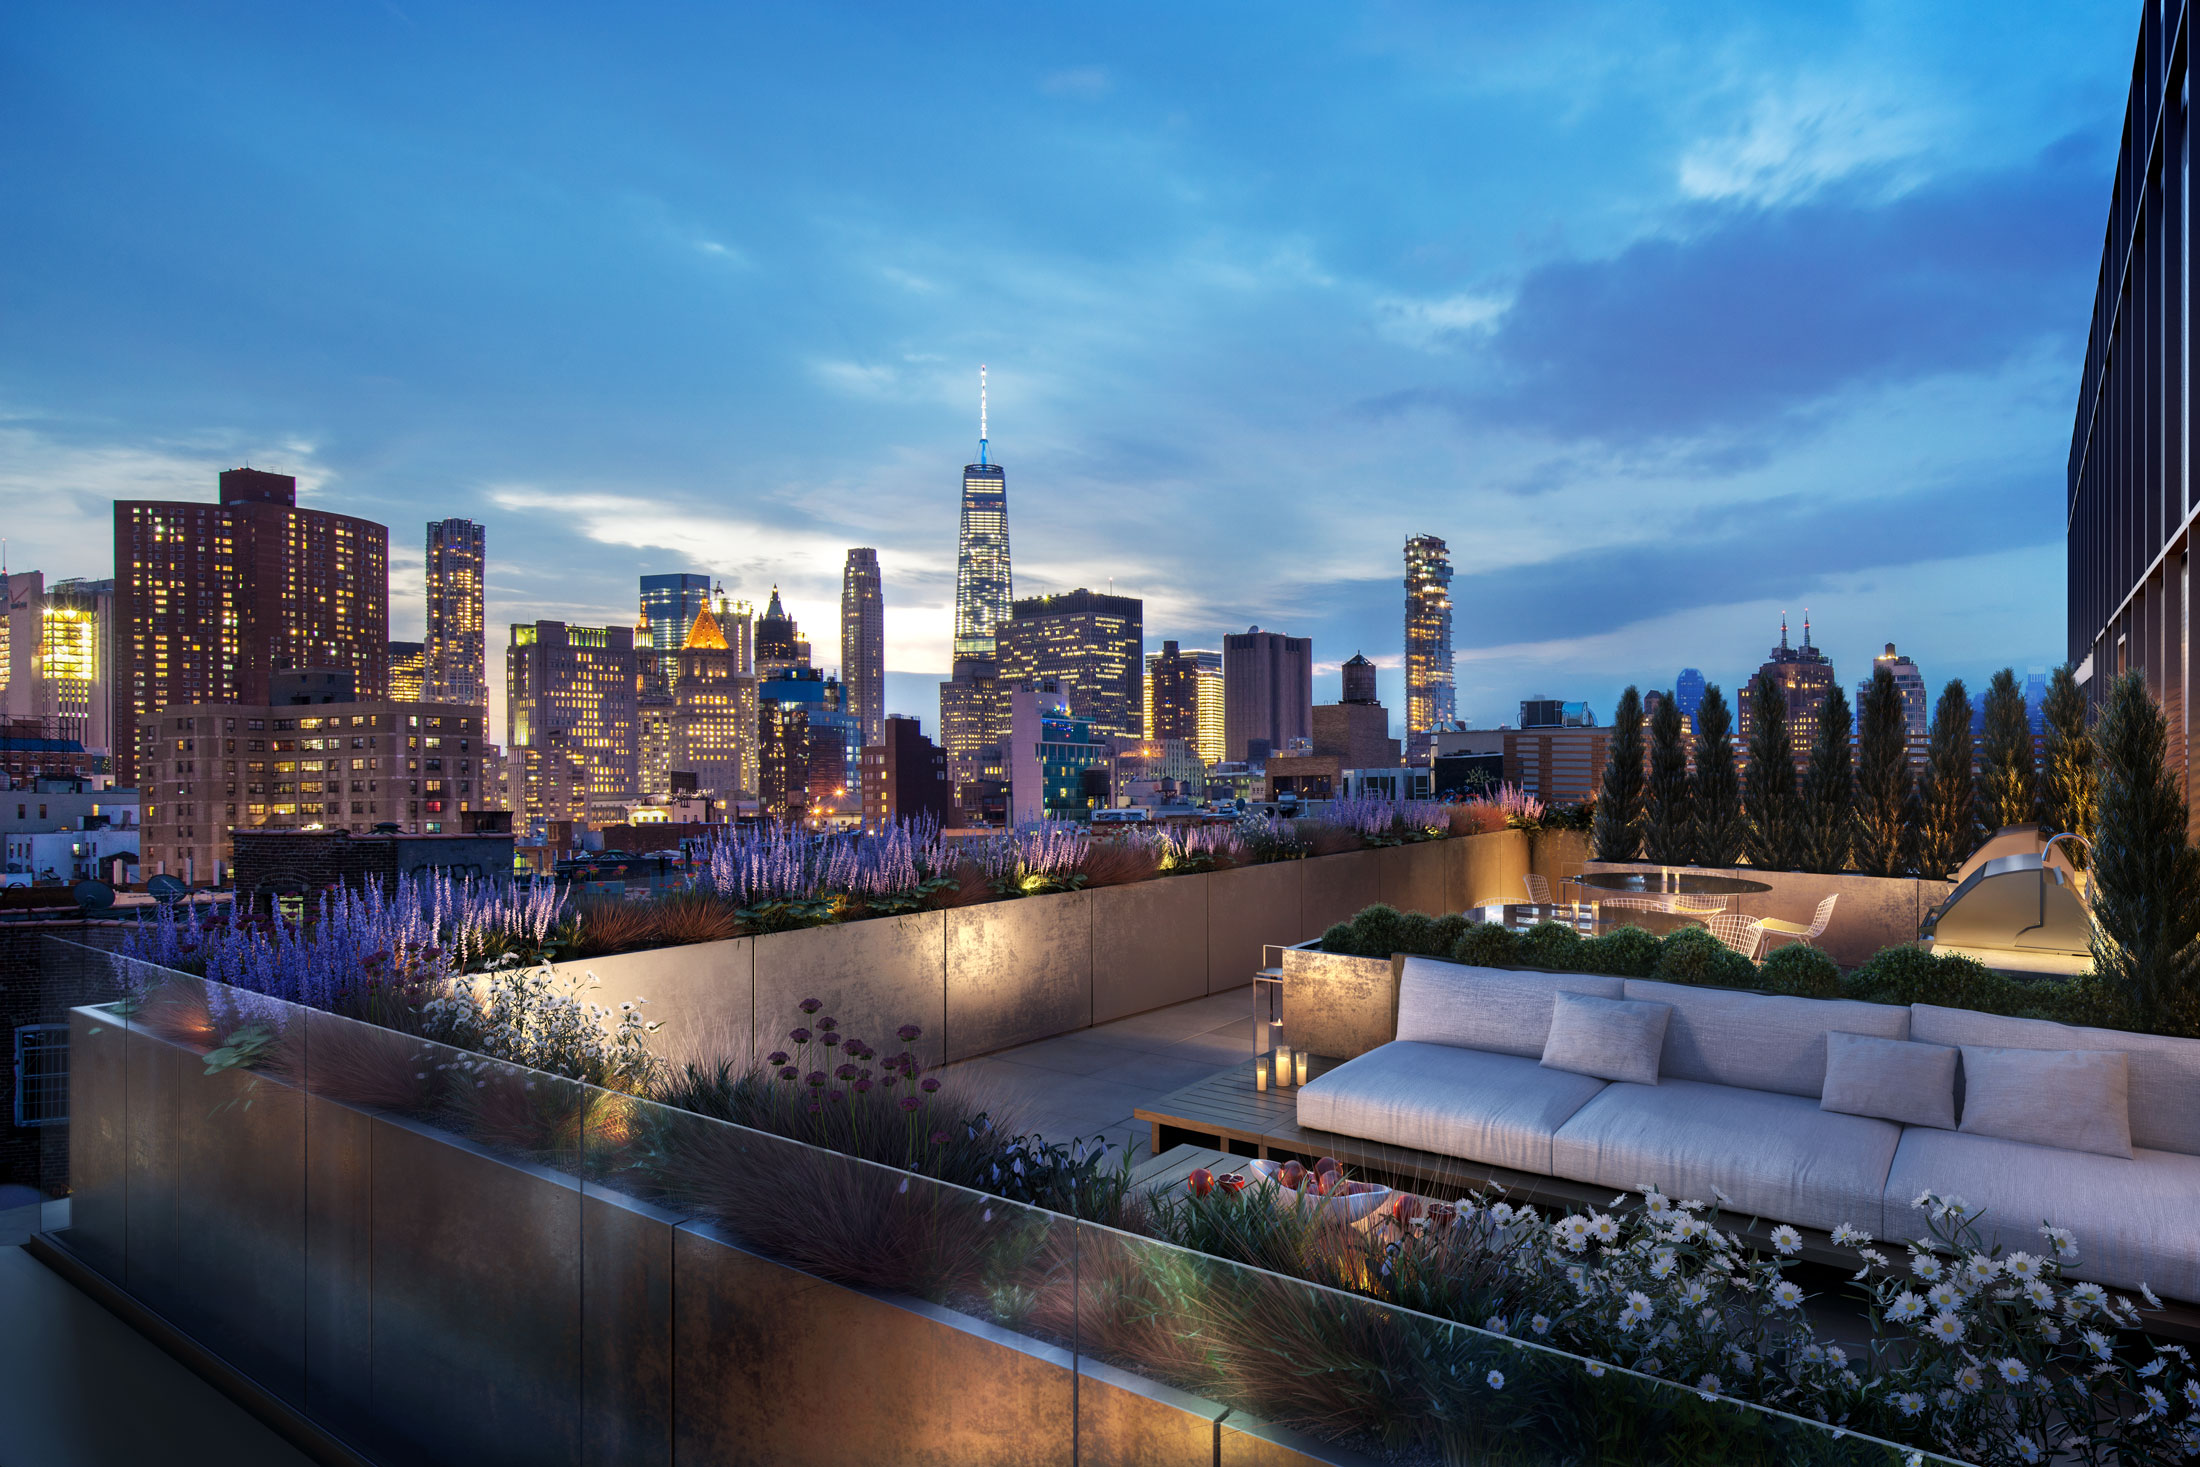 Architectural Rendering of the rooftop of the 242 Broome Street project located on the Lower East Side, New York City